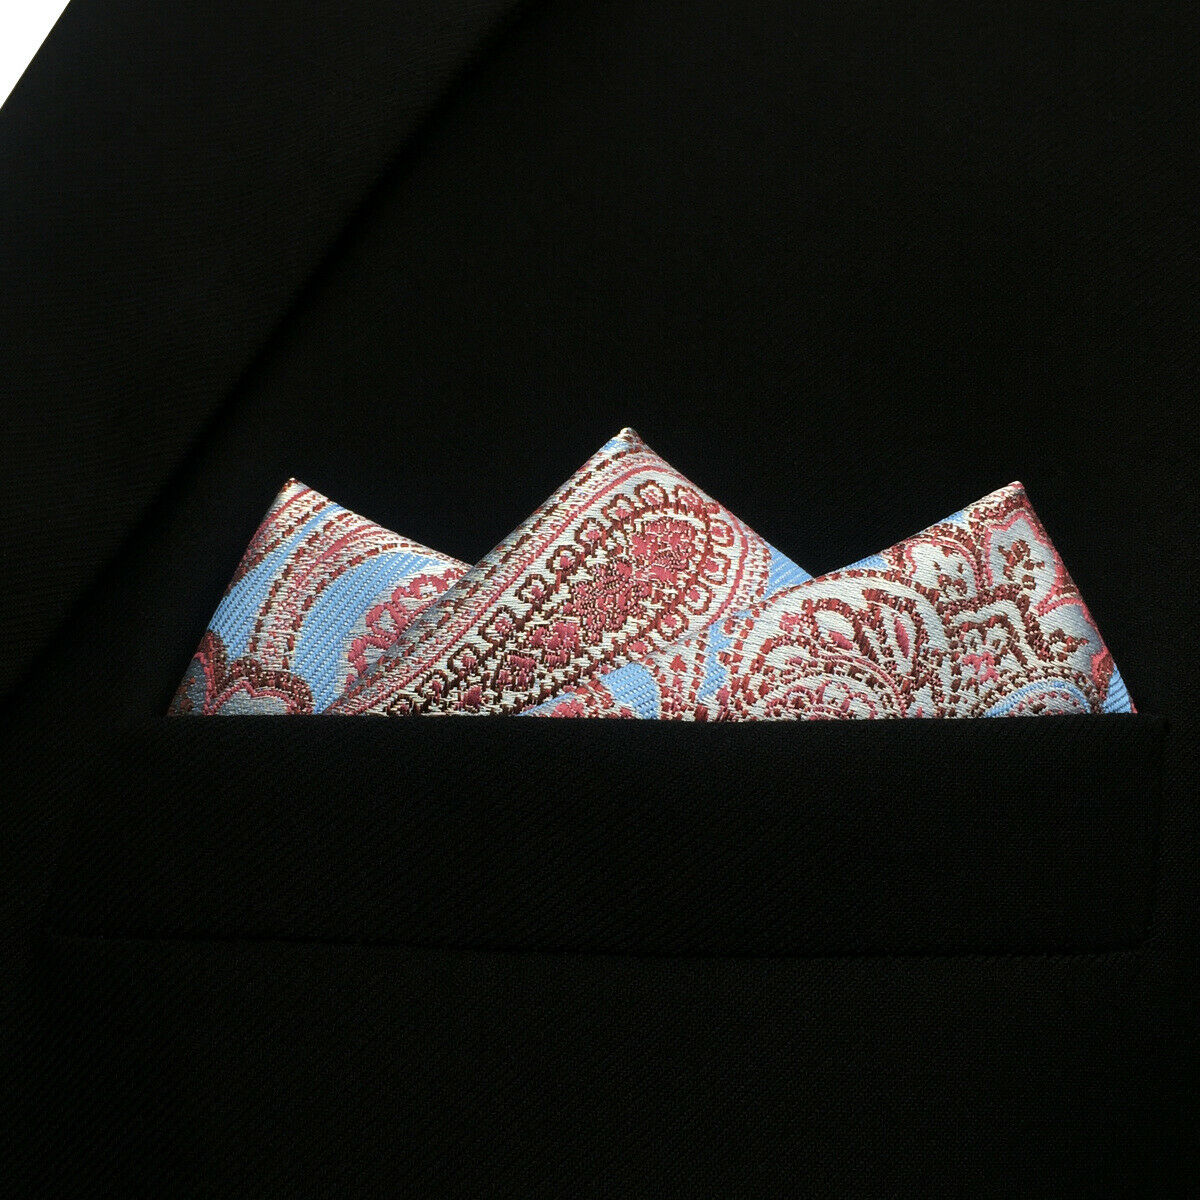 S&W SHLAX&WING New Design Paisley Silk Pocket Square for Men Blue Red Party